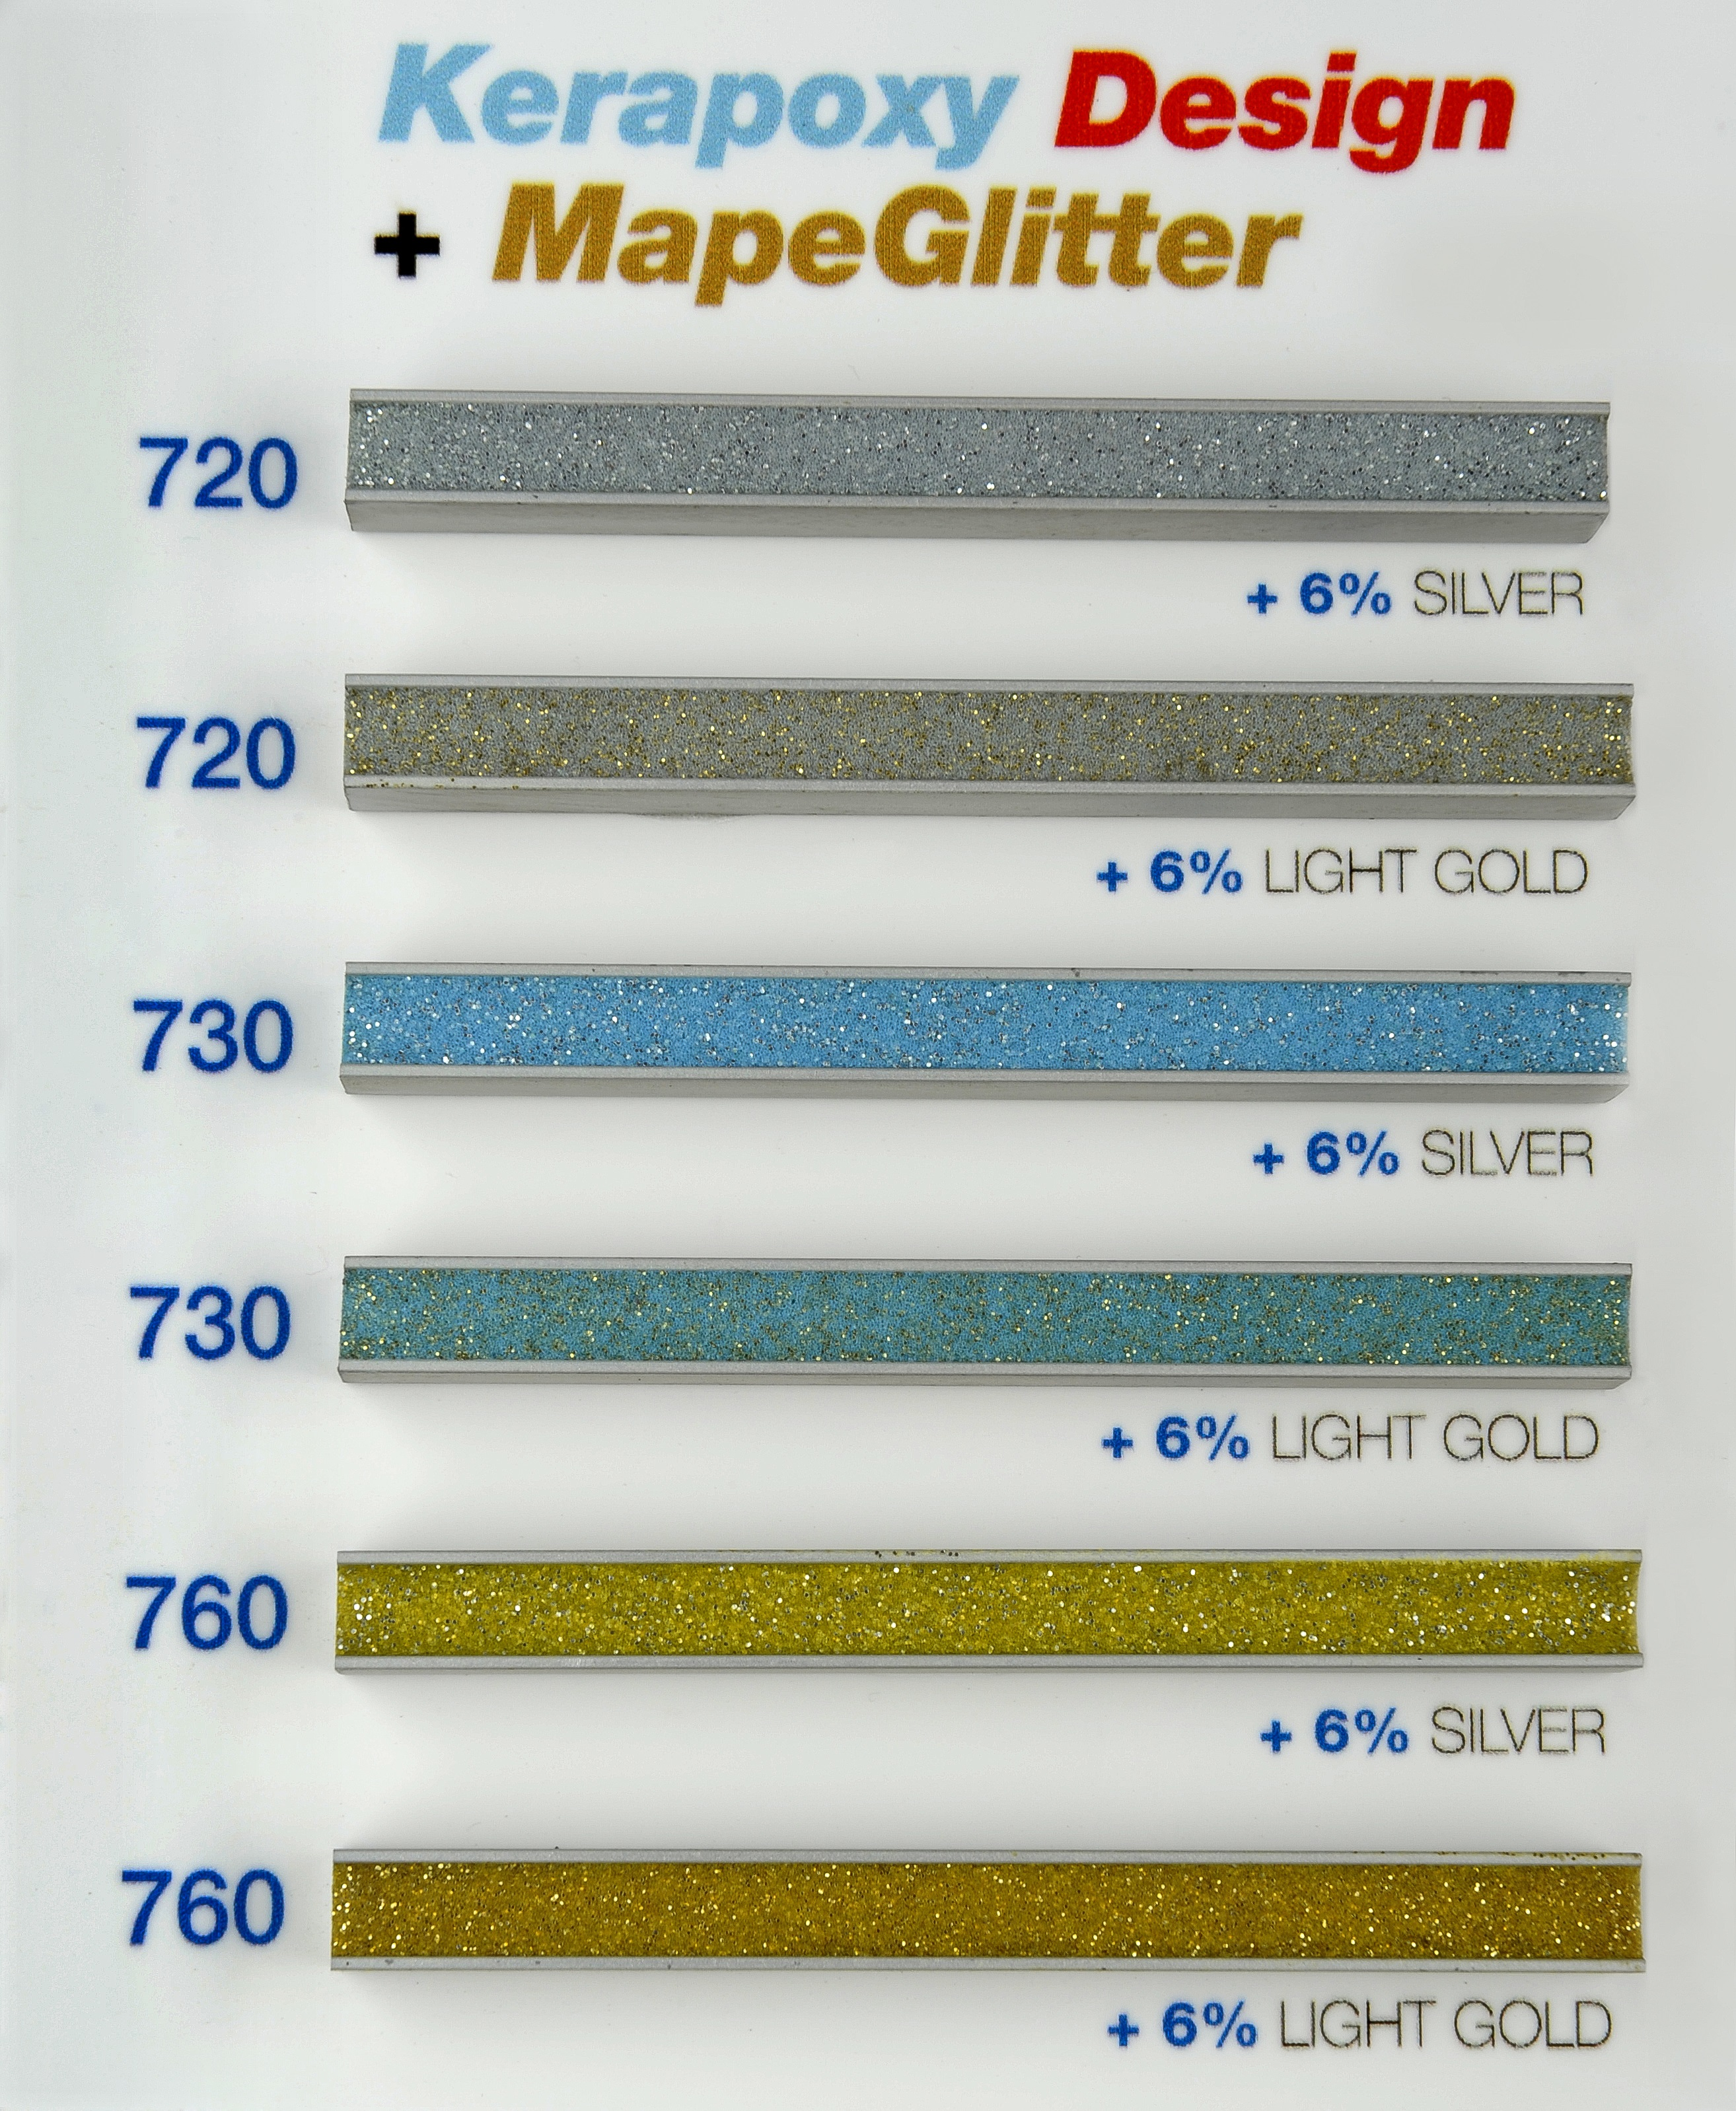 Tec grout color charttec sanded grout color chart car interior mapei grout color chart images chart example ideas geenschuldenfo Images